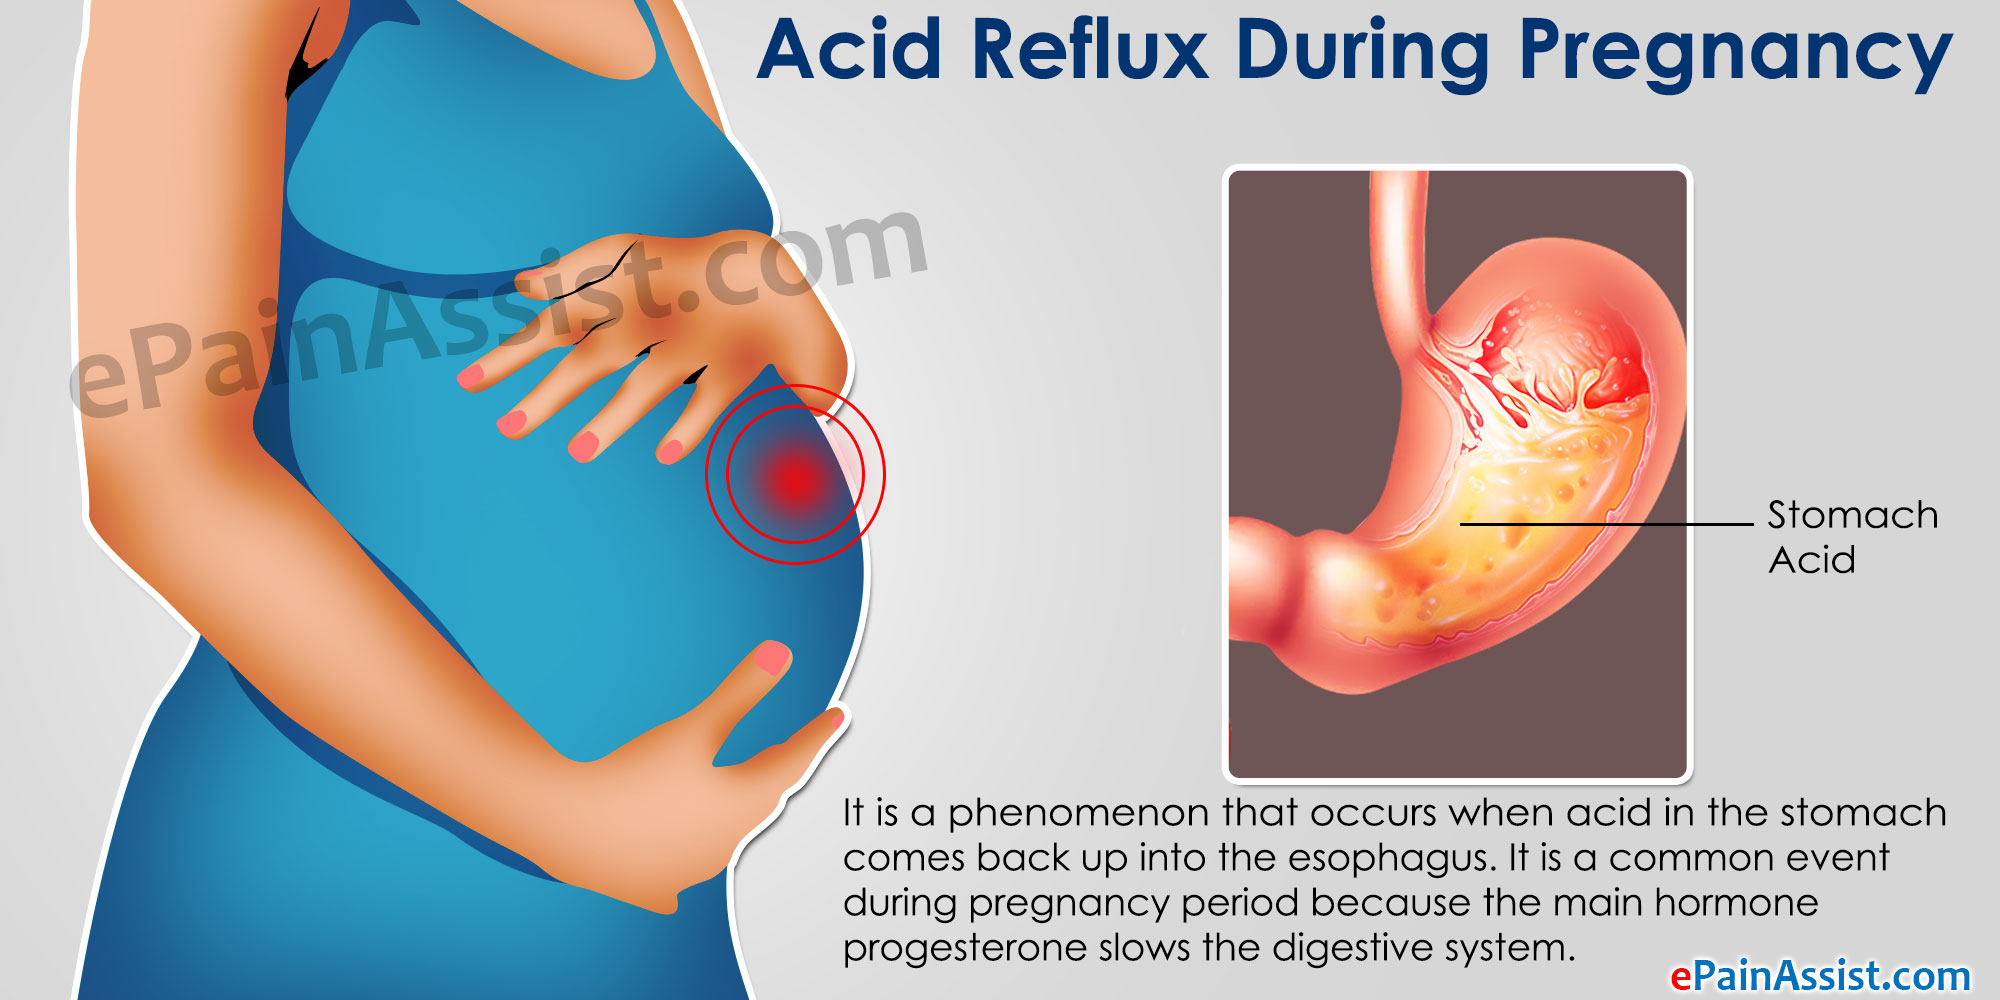 Acid Reflux During Pregnancy Home Remedies And Lifestyle